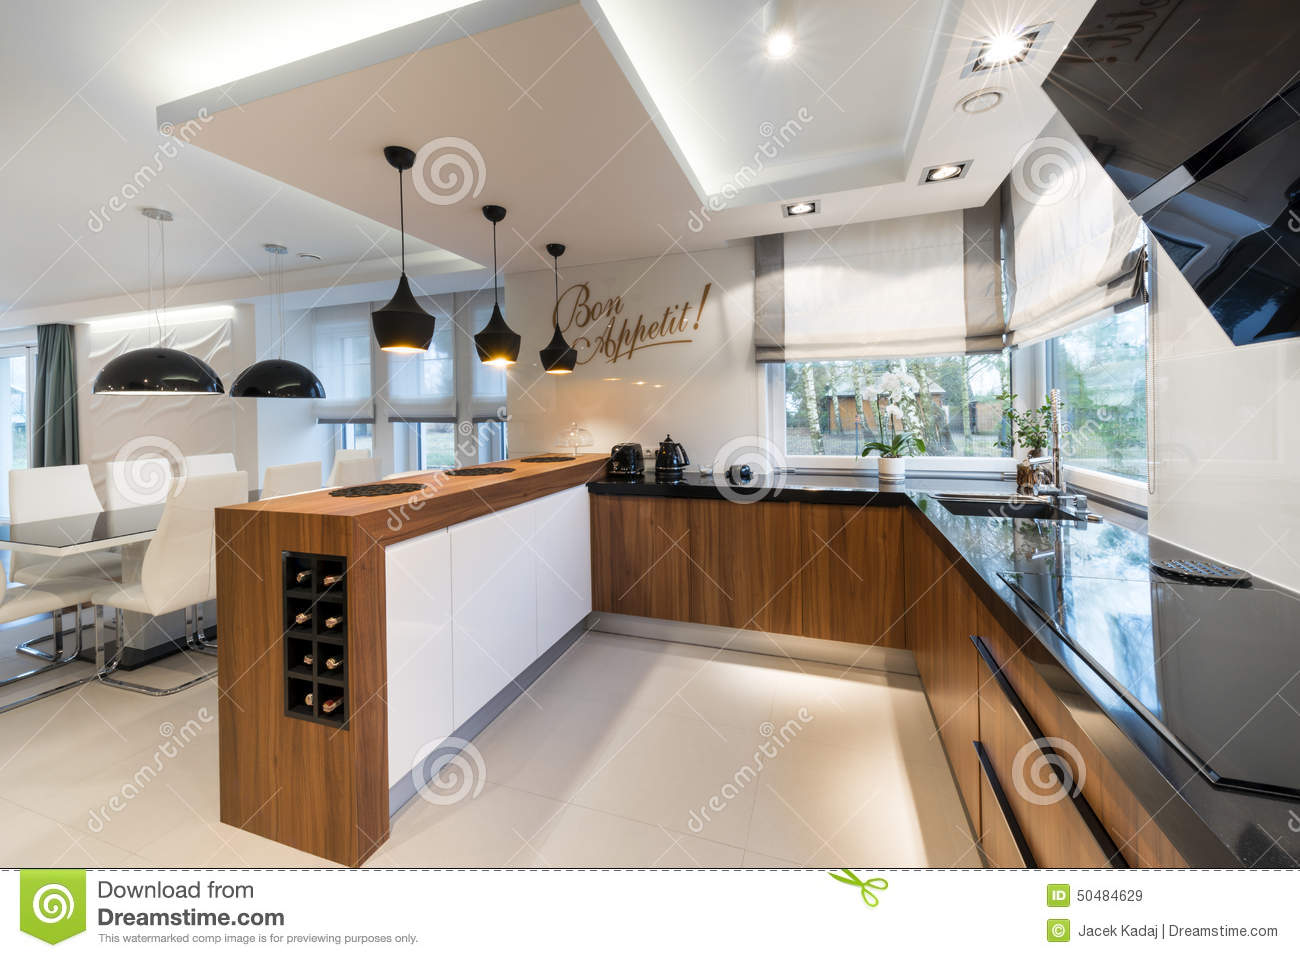 Modern kitchen interior design stock image image of for Kitchen interior design styles